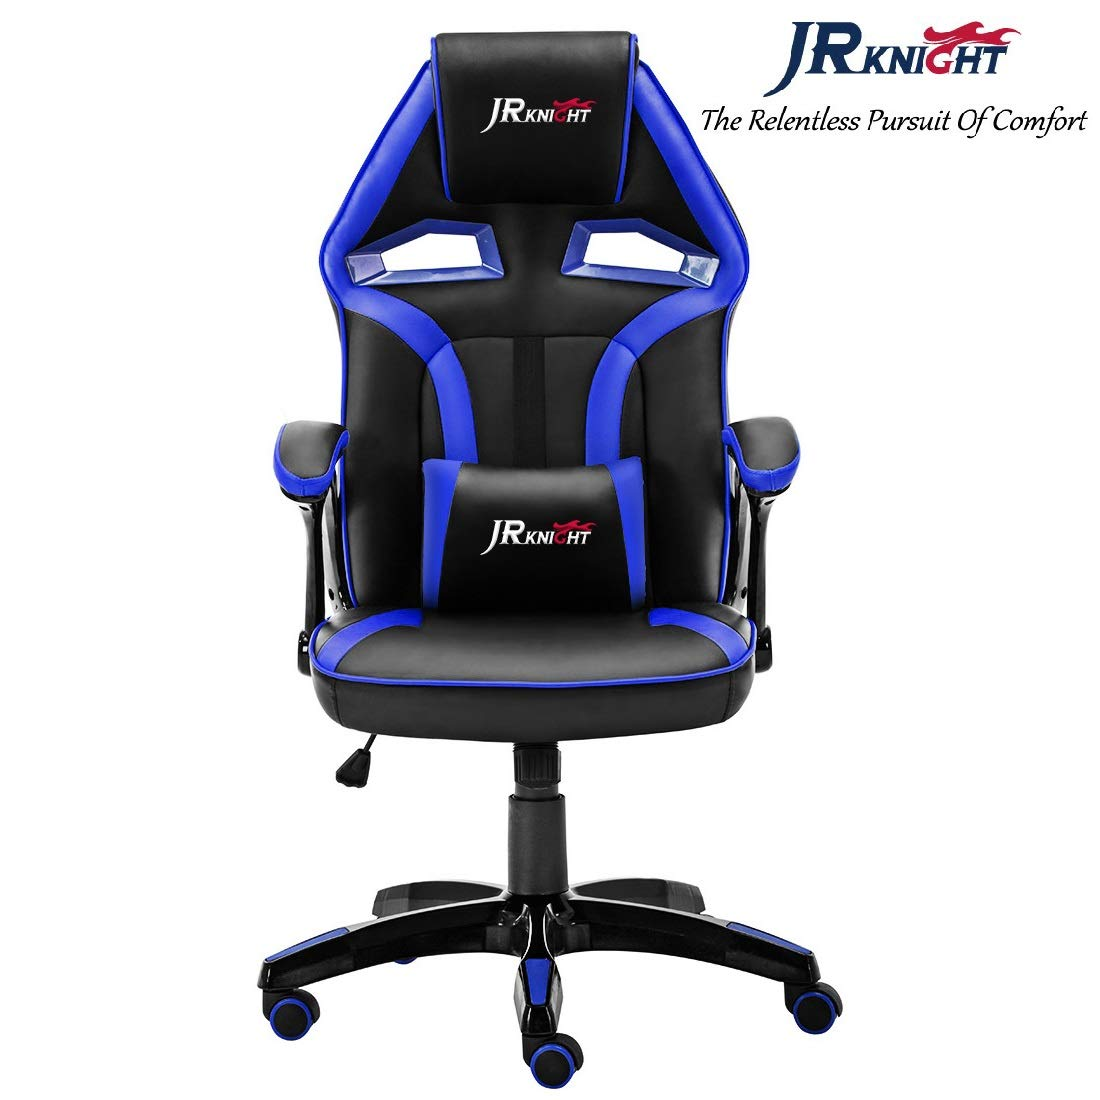 Jr Knight Racing Chair, restauro Alien design Home Office computer Gaming Exclusive – Sedia girevole in pelle White& Black JR Knight Furniture